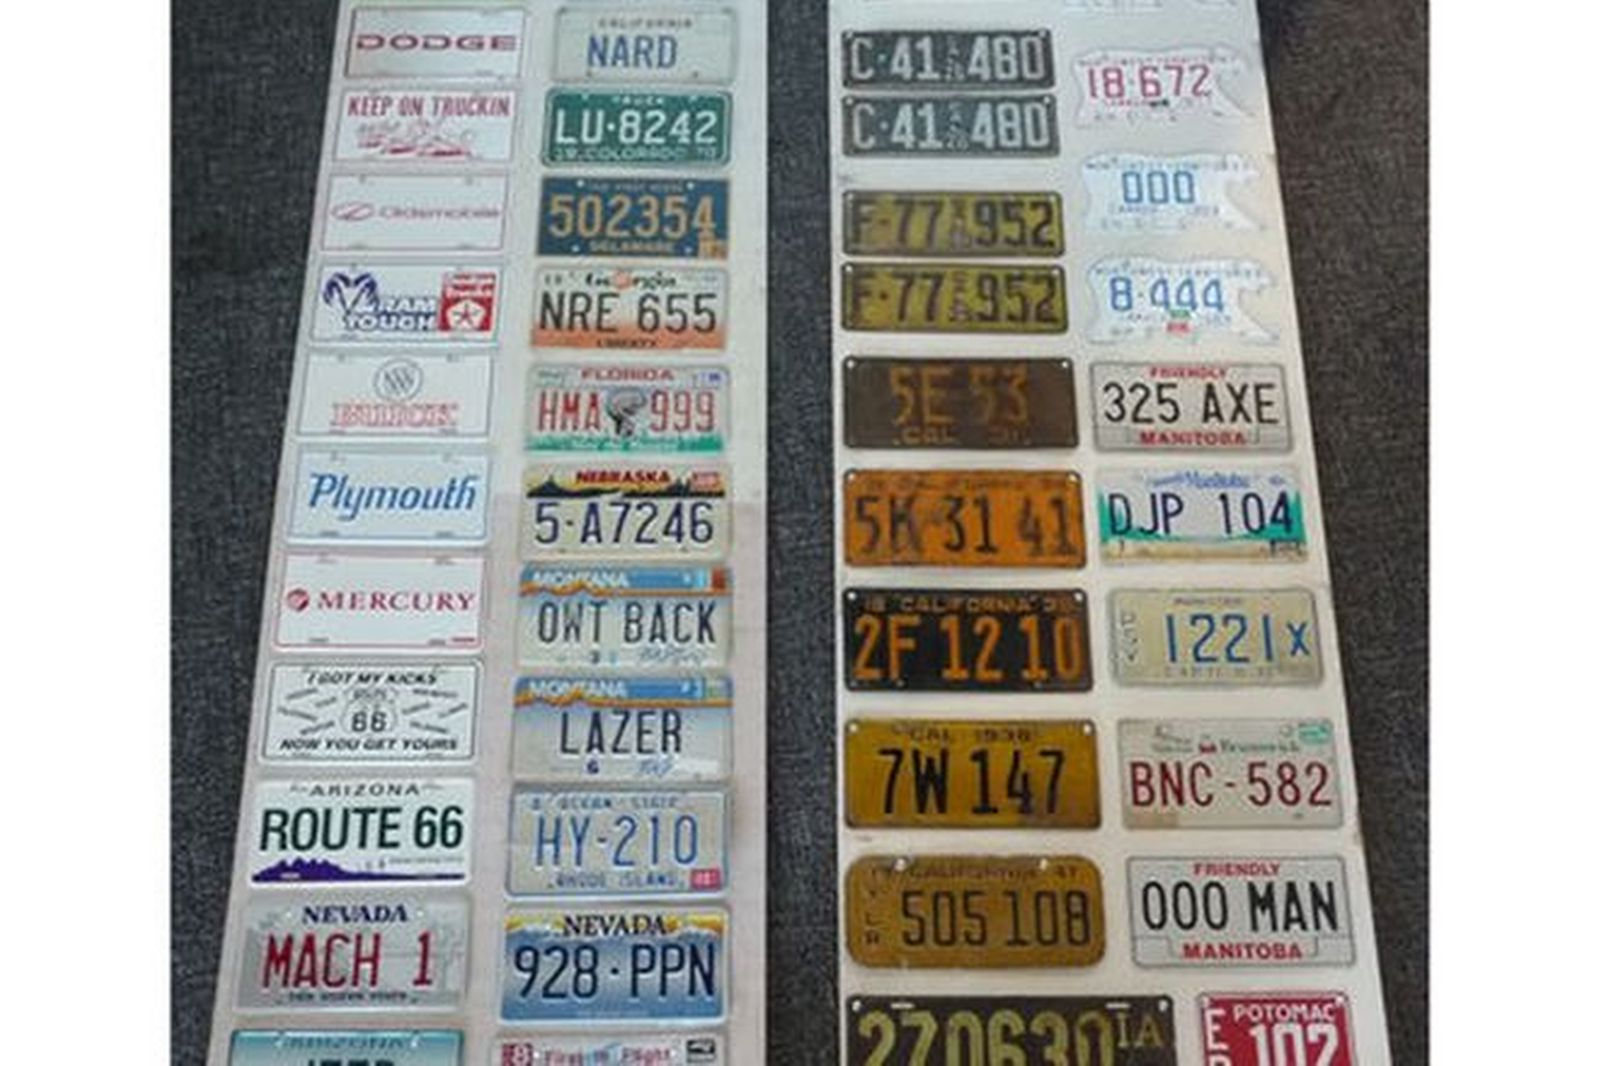 Number Plates - 45 Canadian & US Number Plates Mounted on Display Board